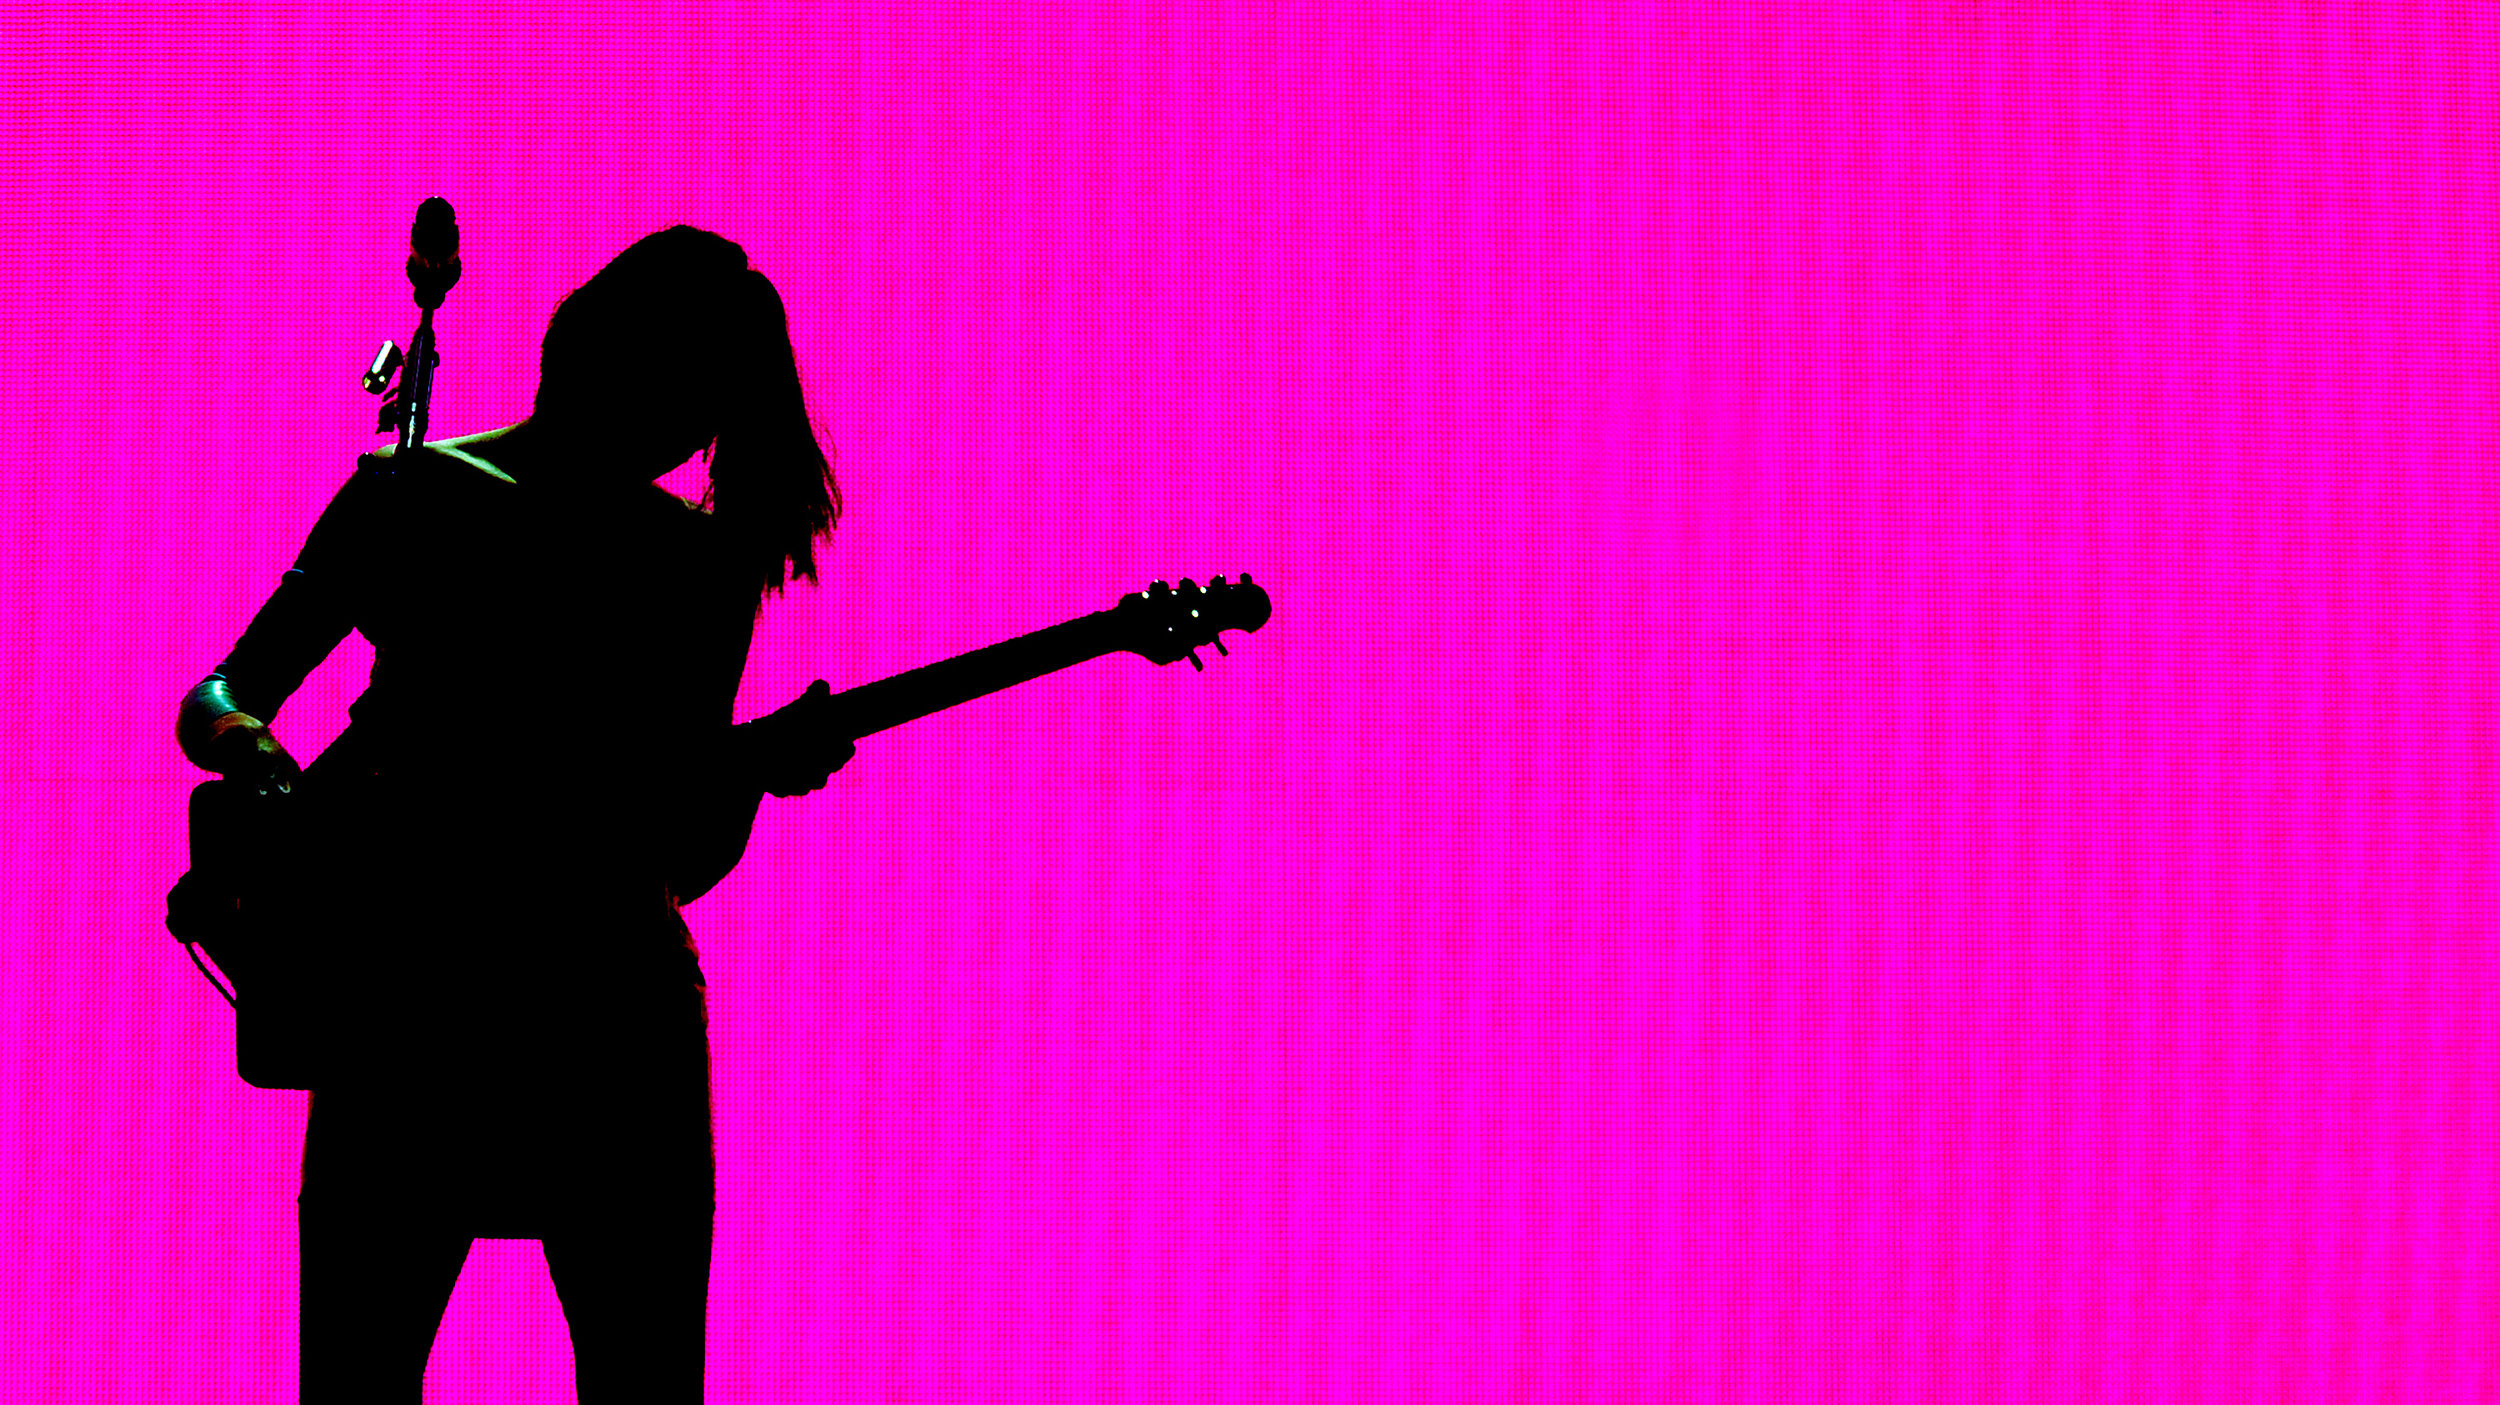 St. Vincent plays her guitar in front of a neon pink background.